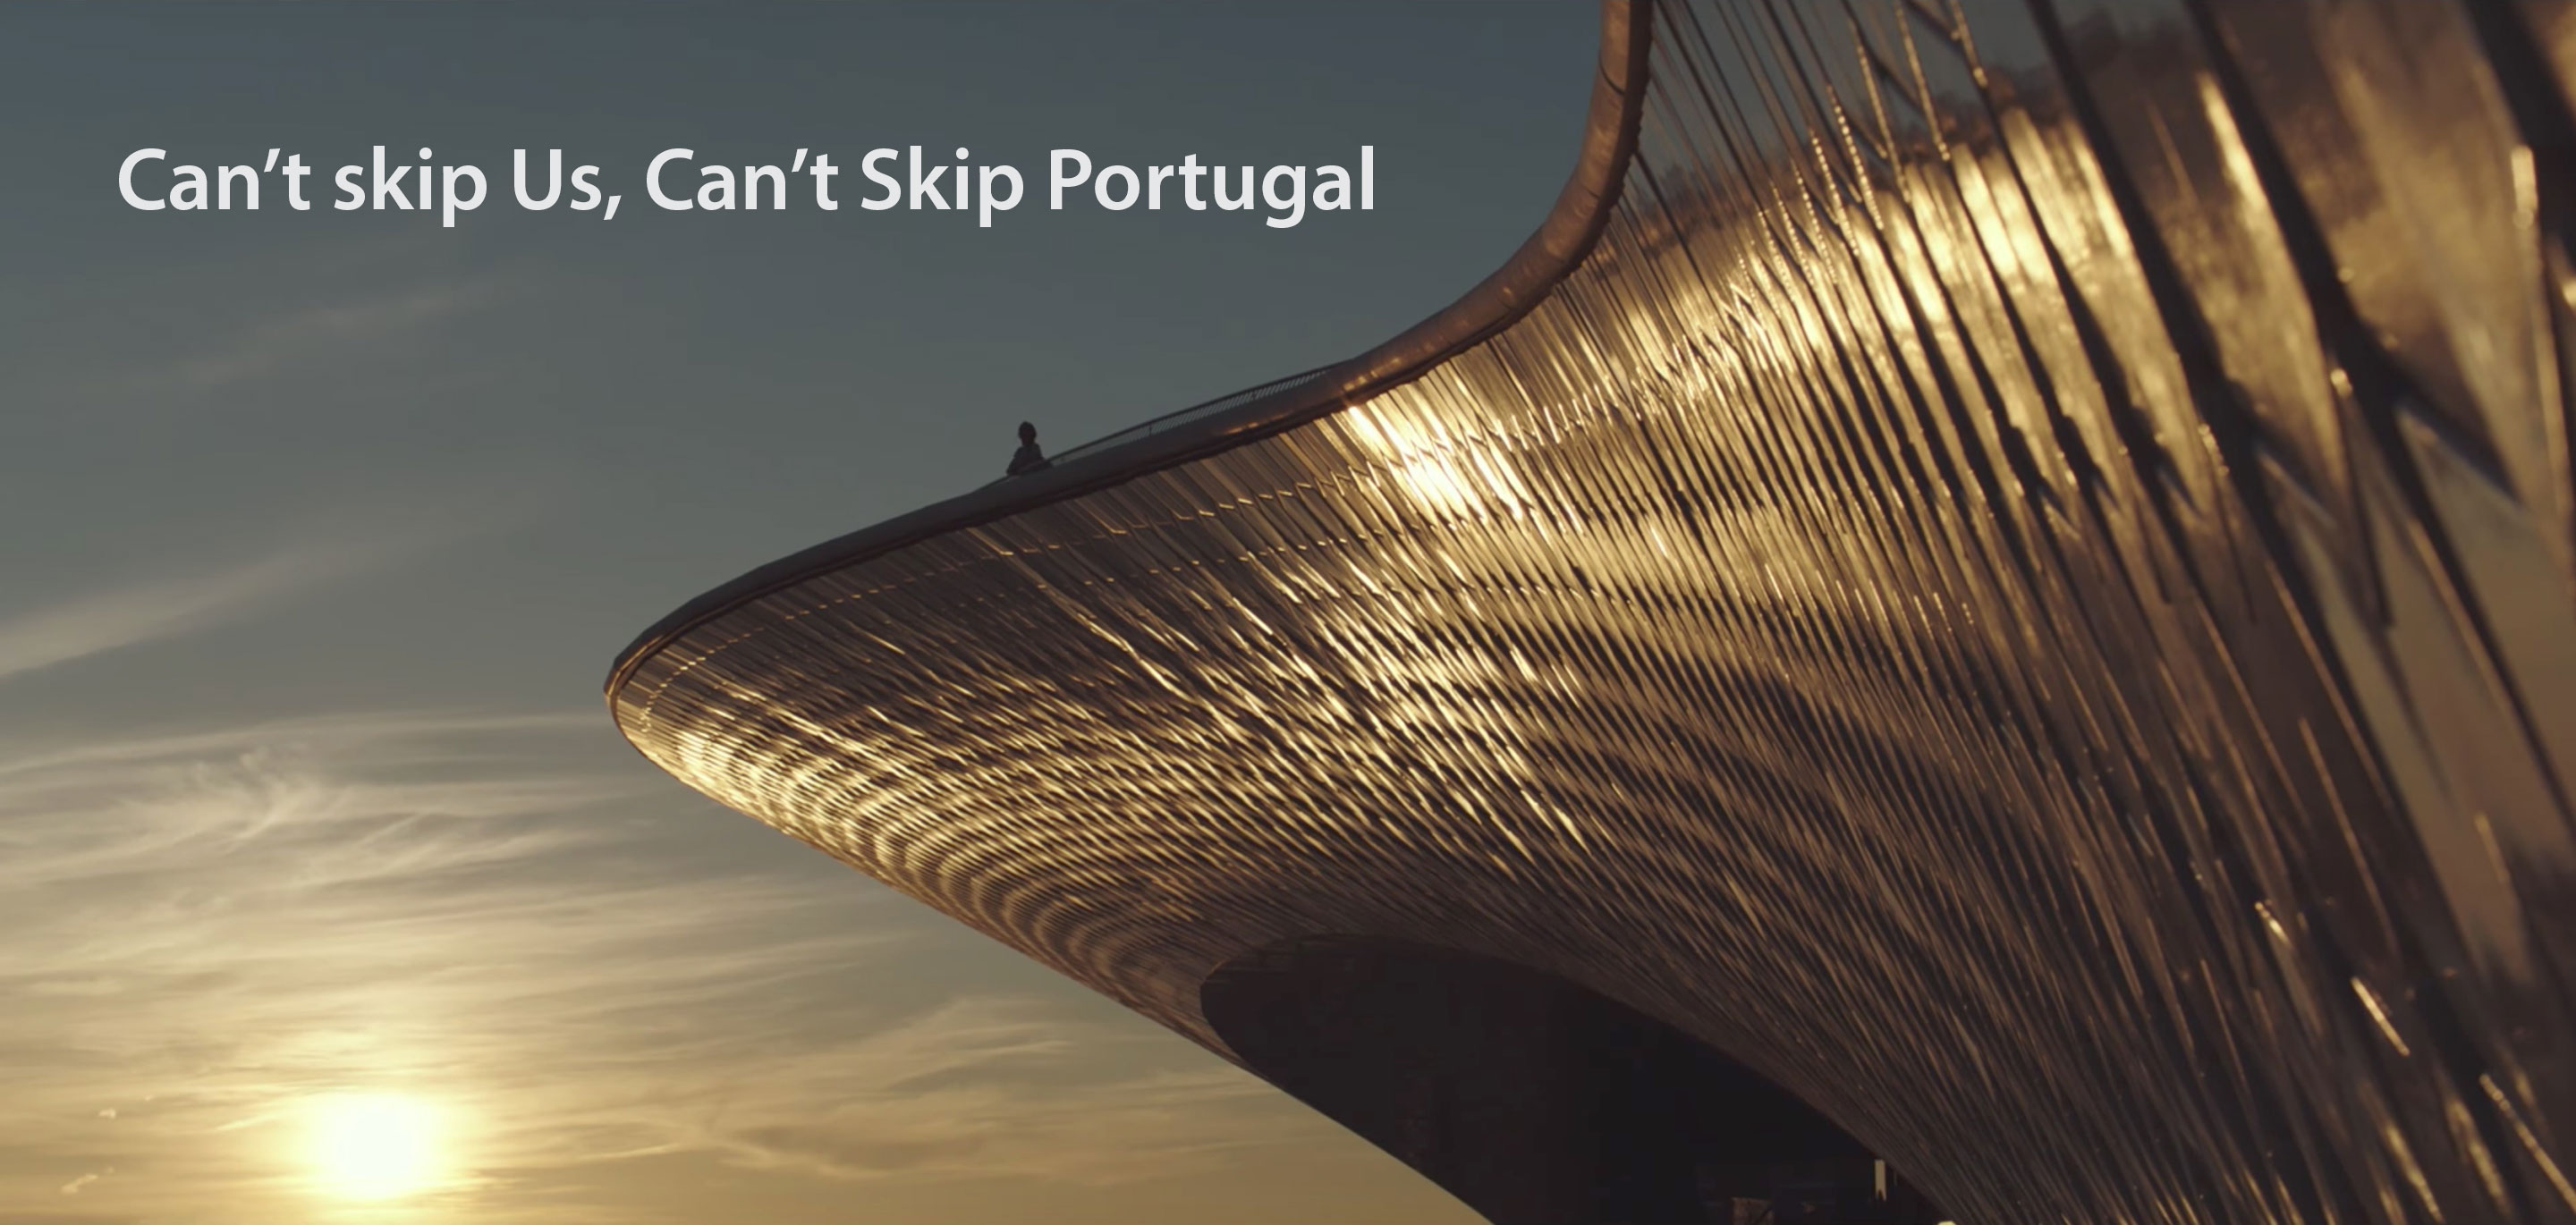 Do you really know Portugal?